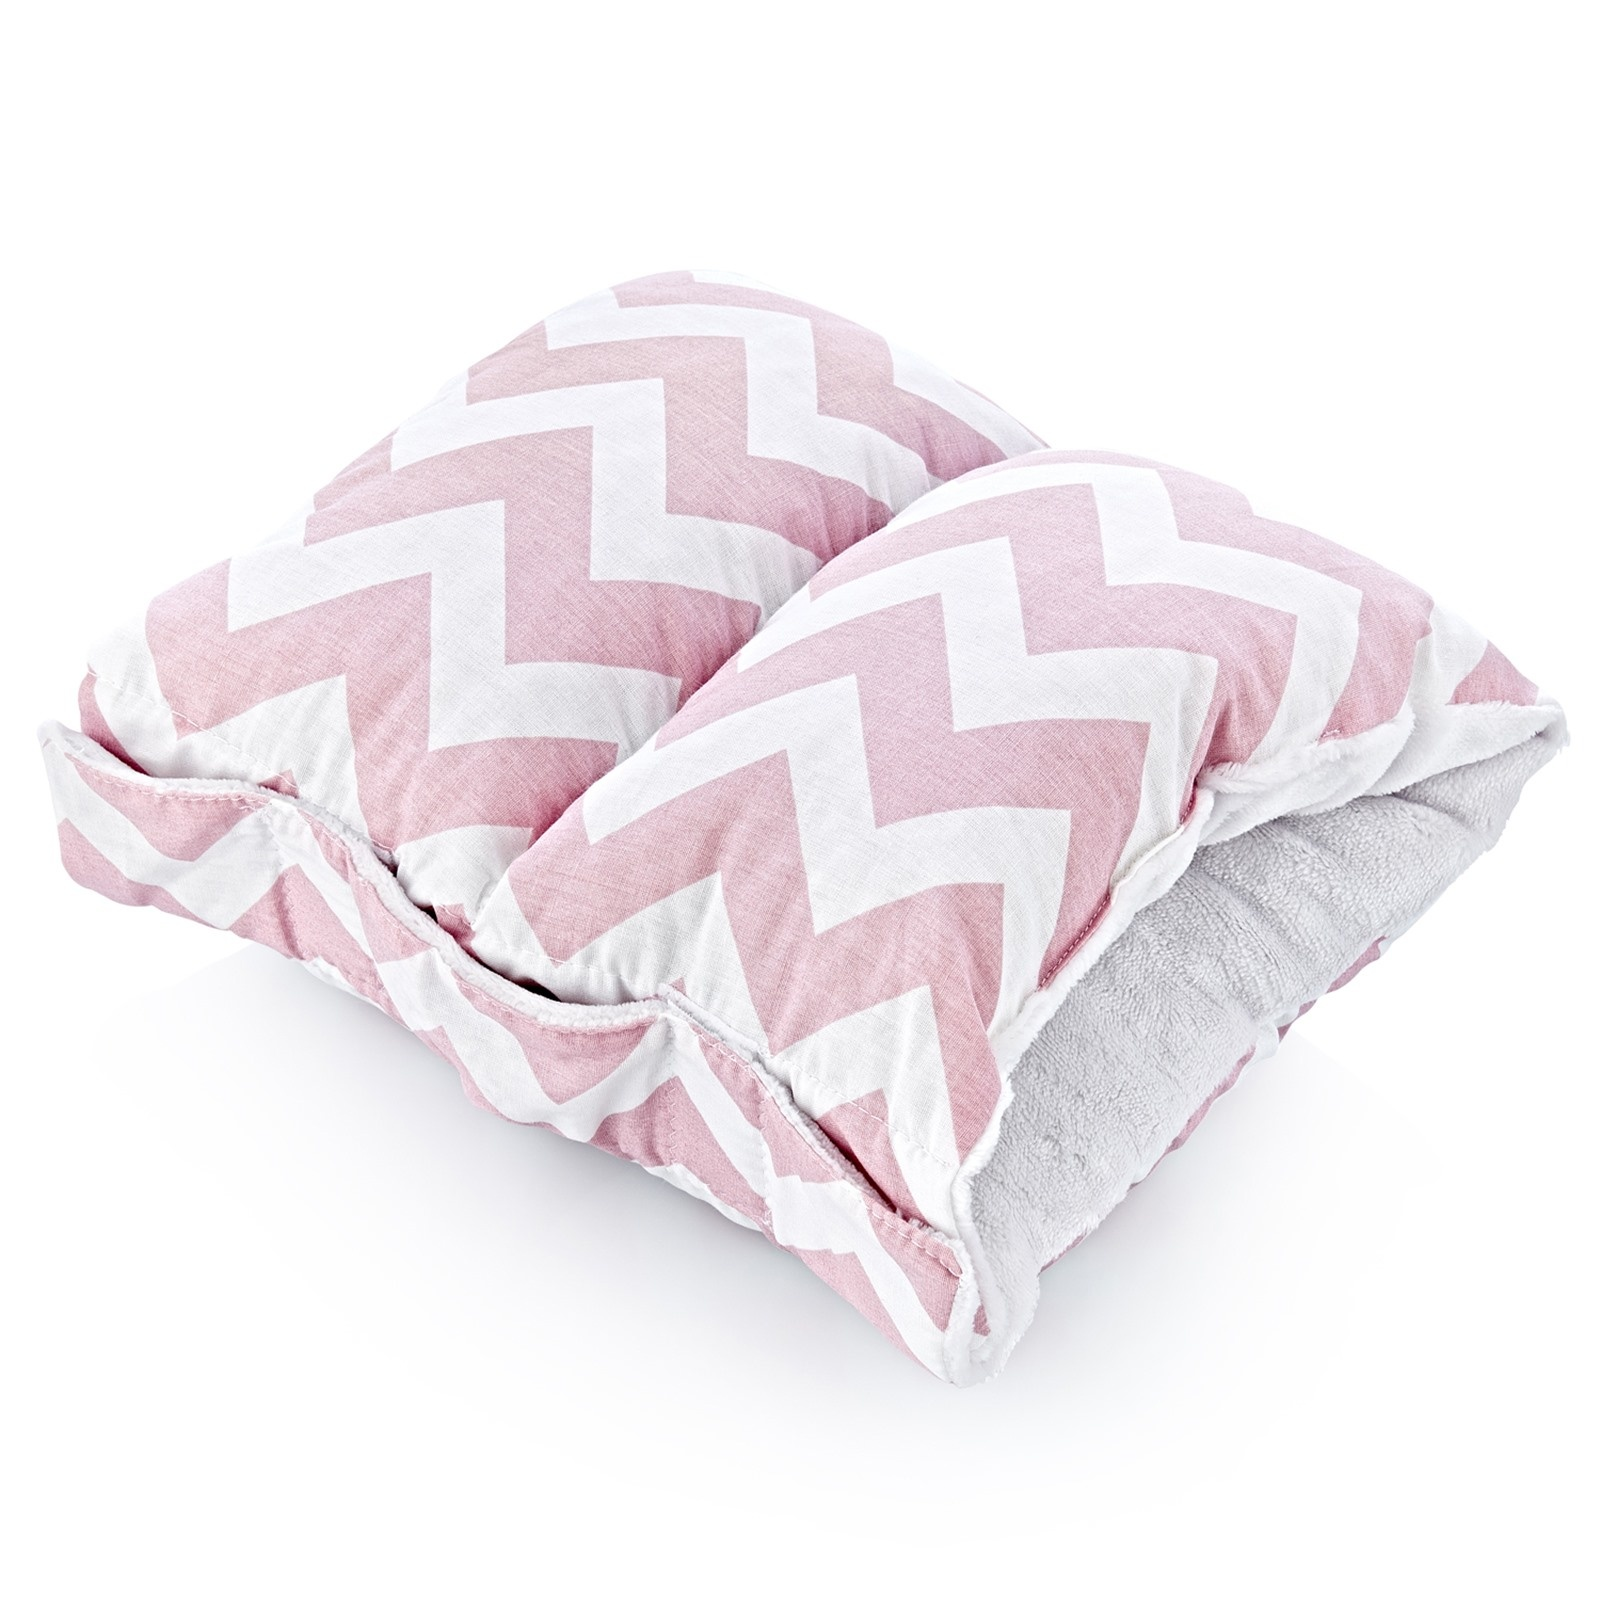 Ebebek Babyjem Multi-Purpose Nursing Breastfeeding Pillow